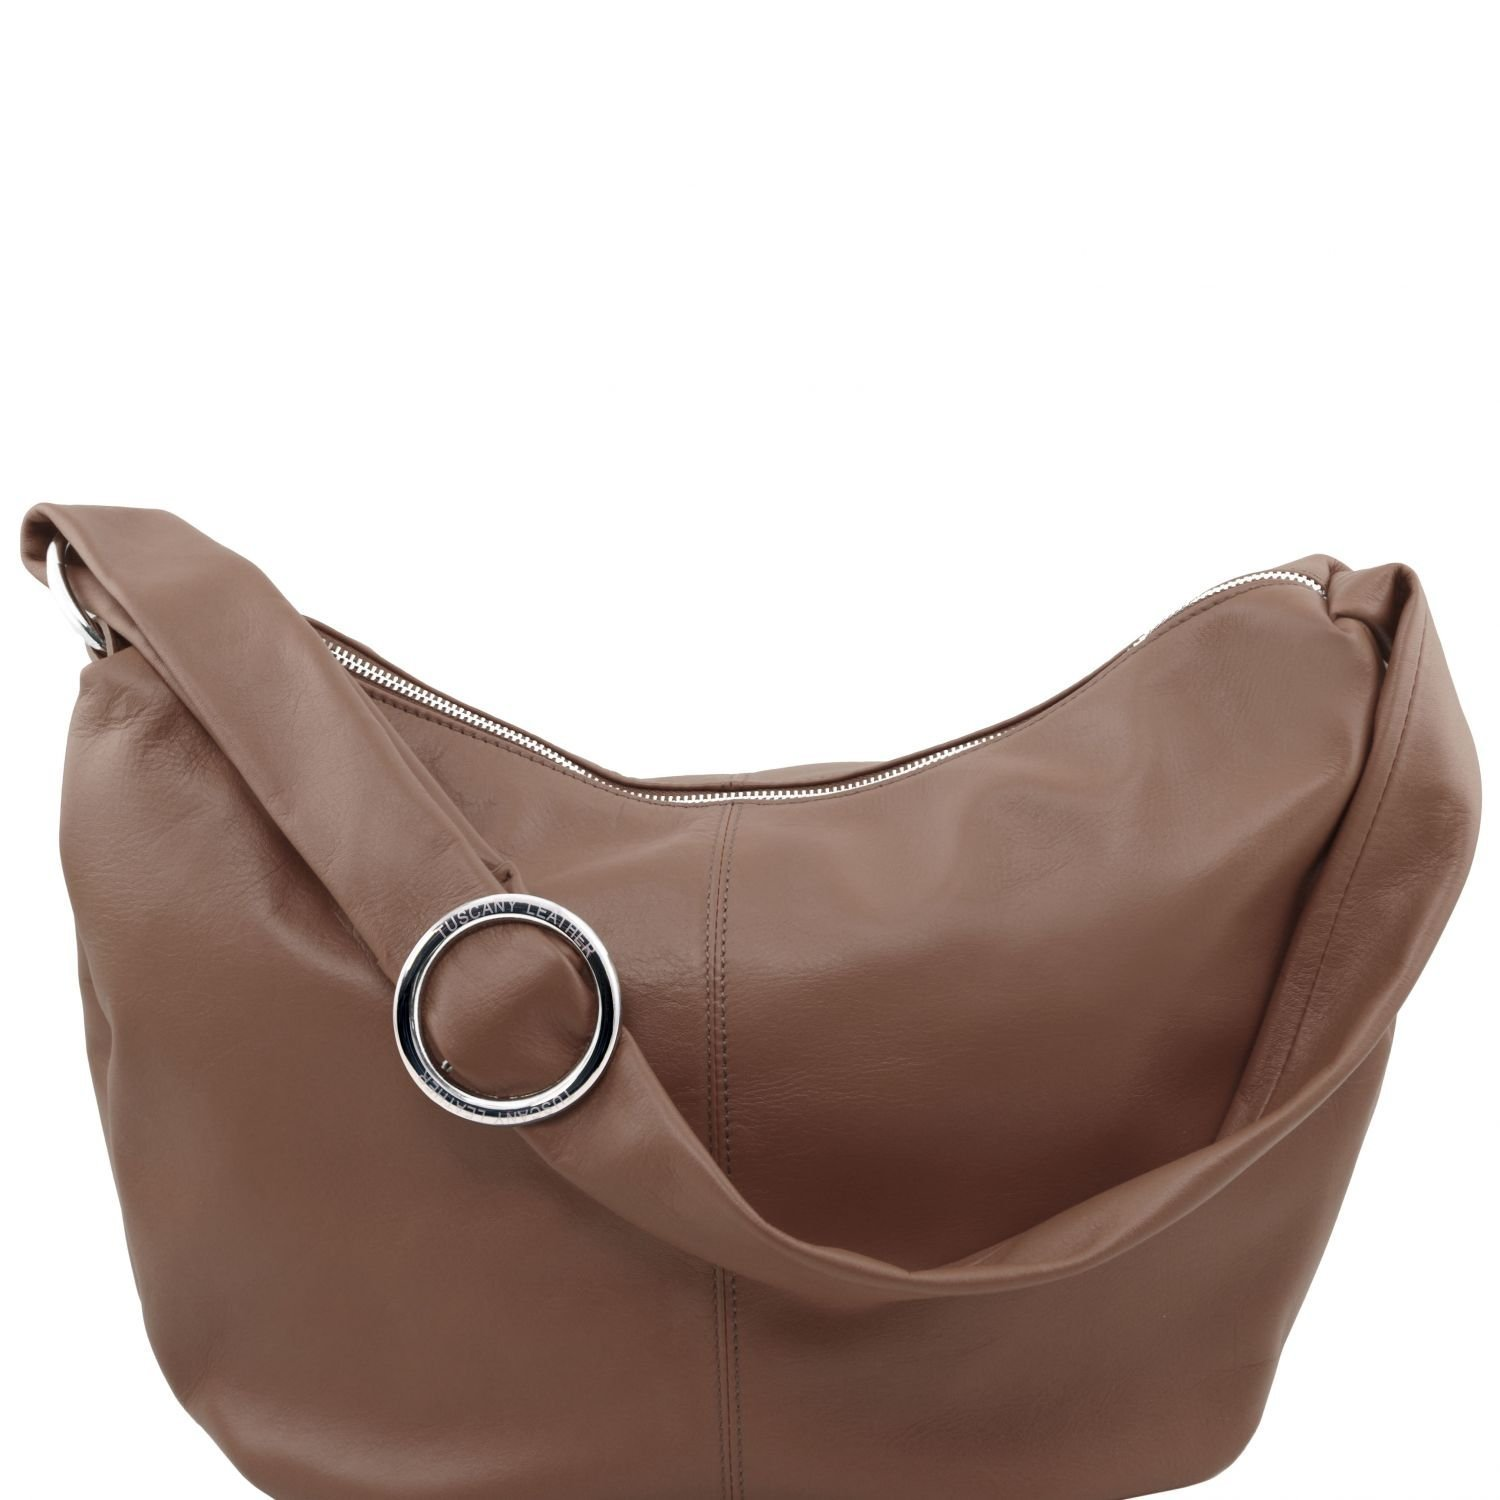 Tuscany Leather - Yvette - Leather hobo bag - TL140900 (Dark Taupe)